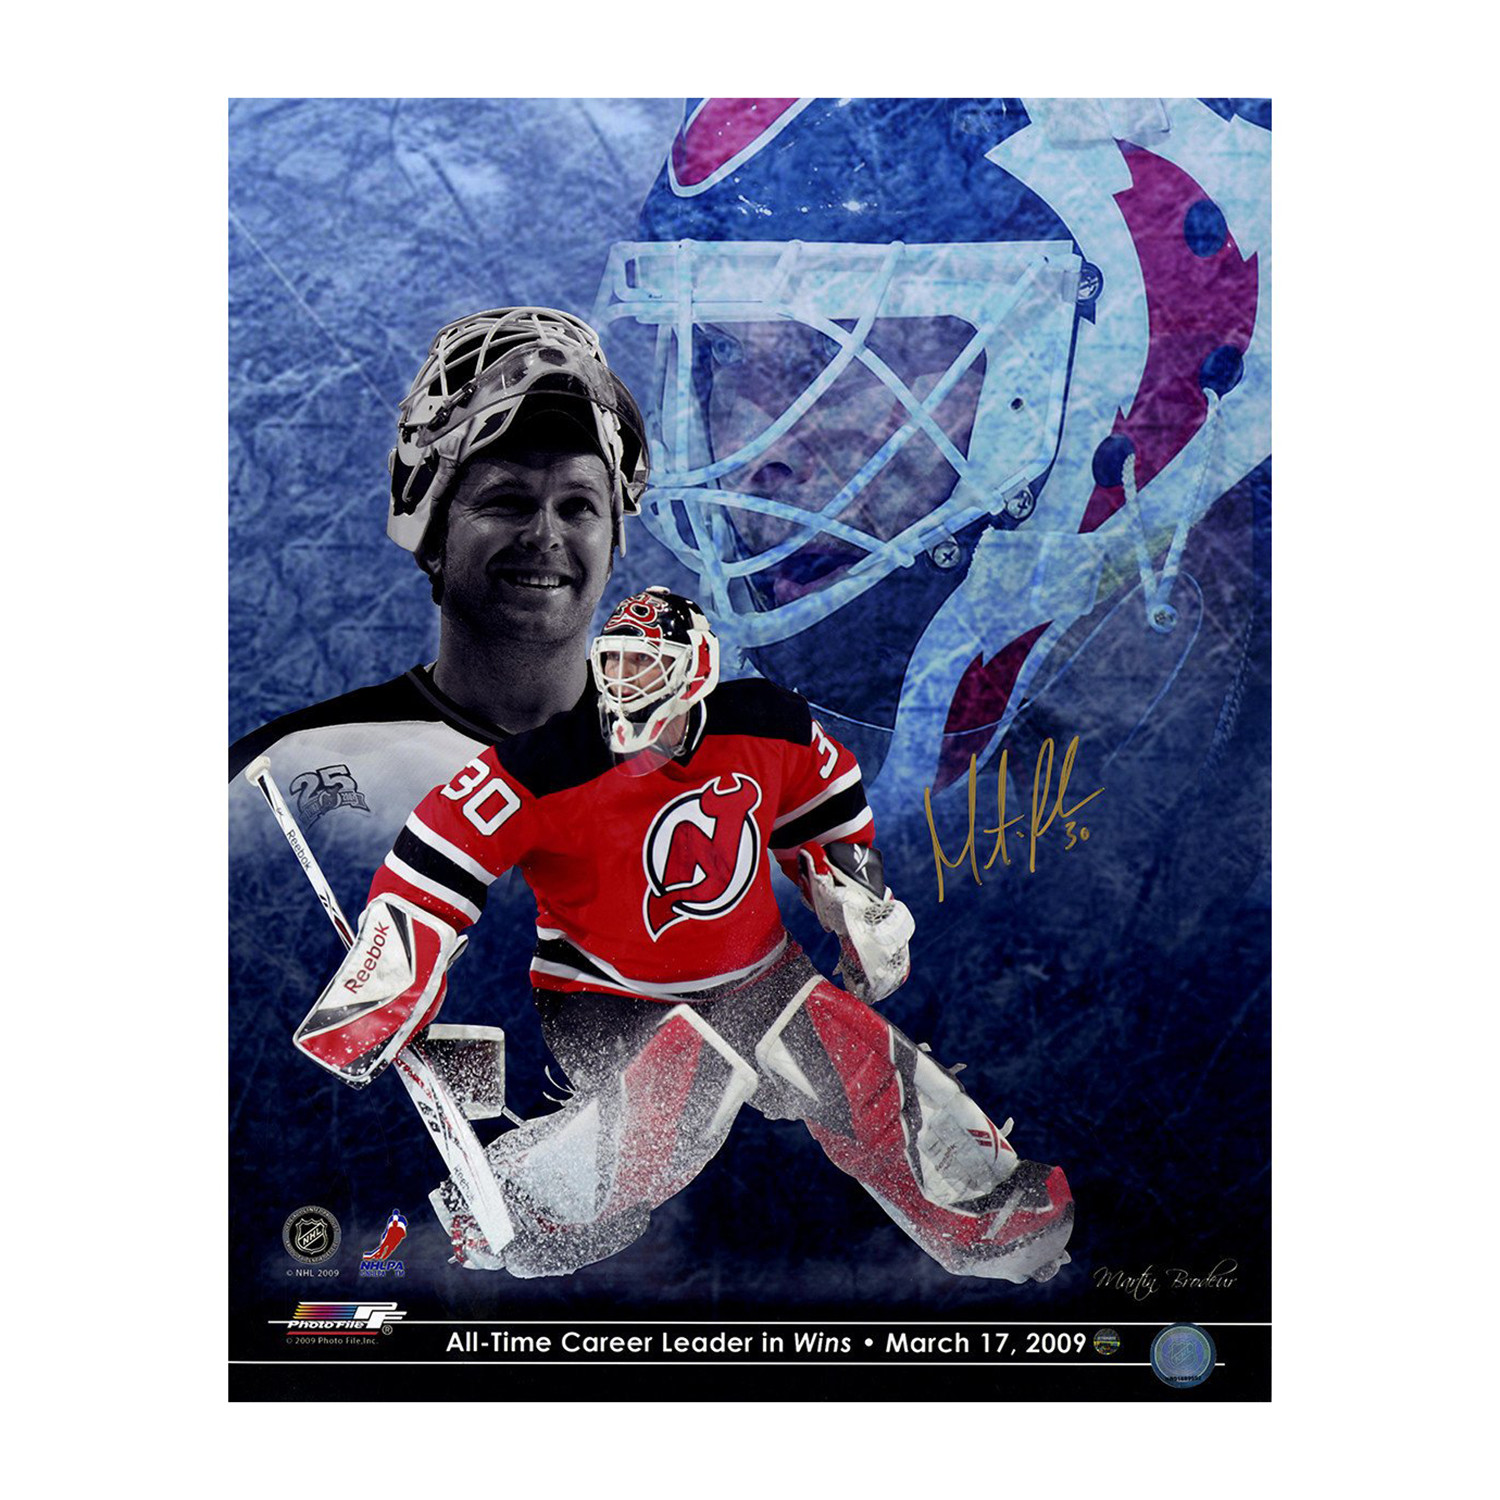 Martin Brodeur Signed All Time Wins Leader Photo Collage Steiner